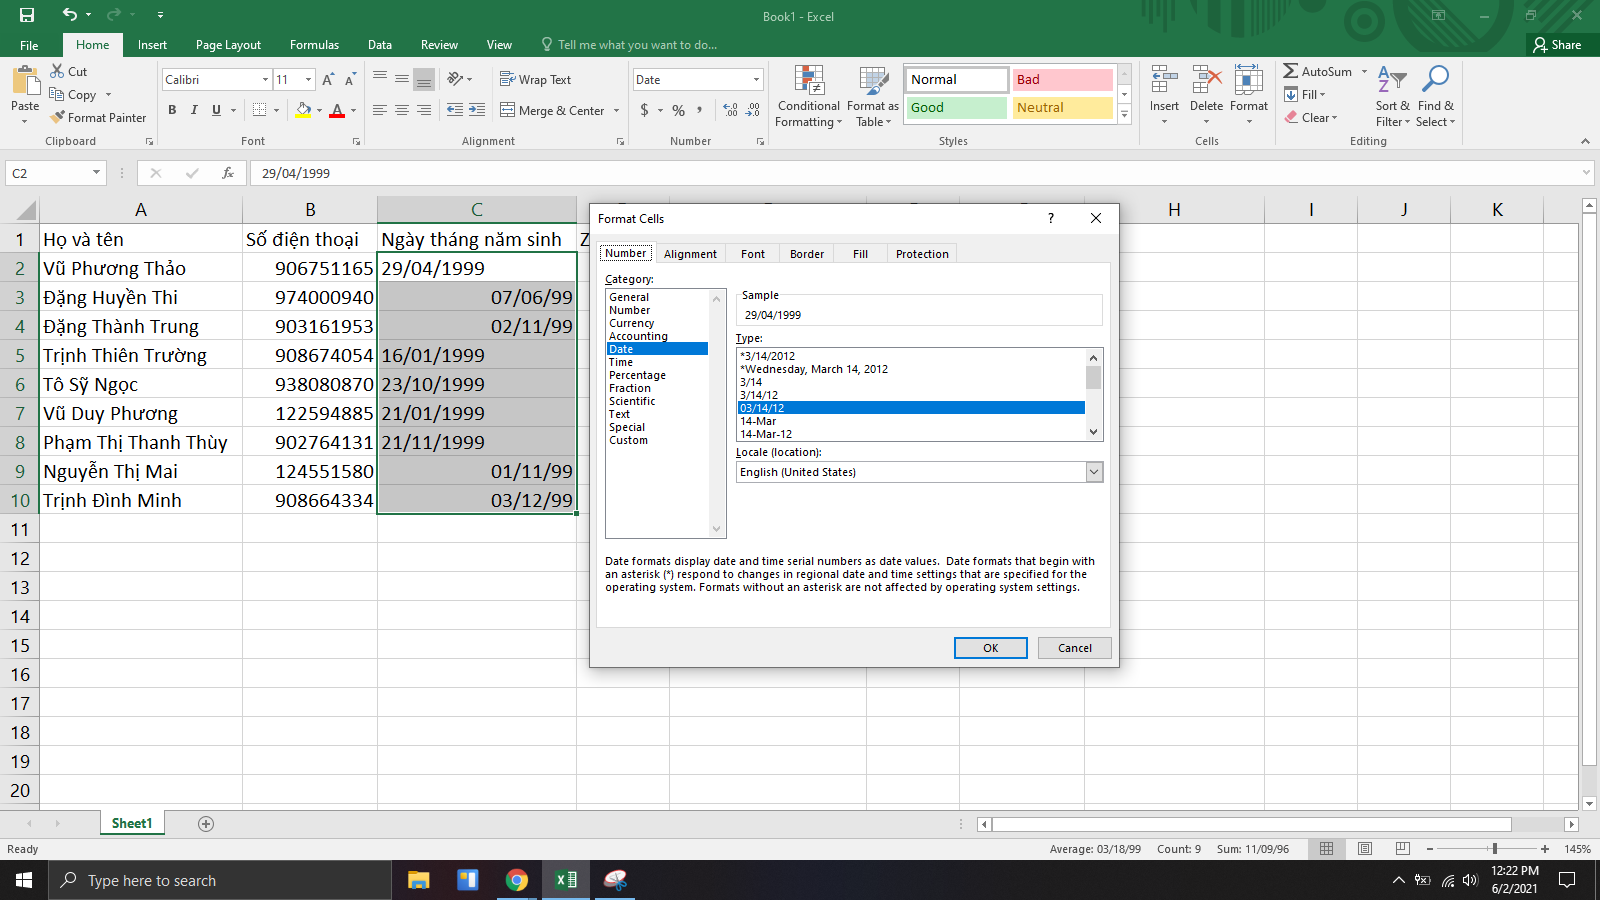 cach-hien-so-0-trong-excel